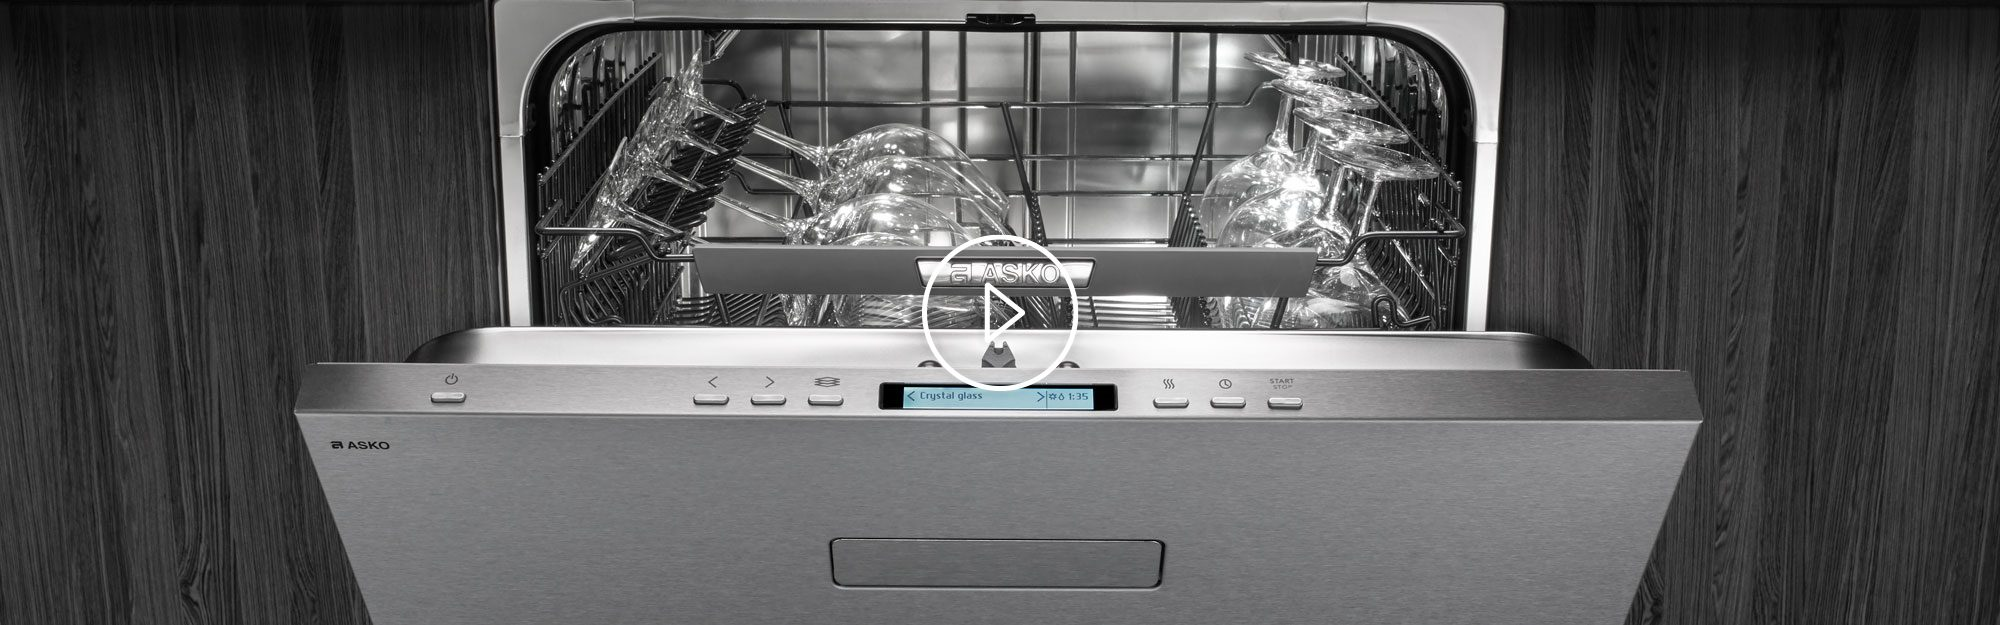 ASKO Dishwashers are tested for 20 years of frequent use